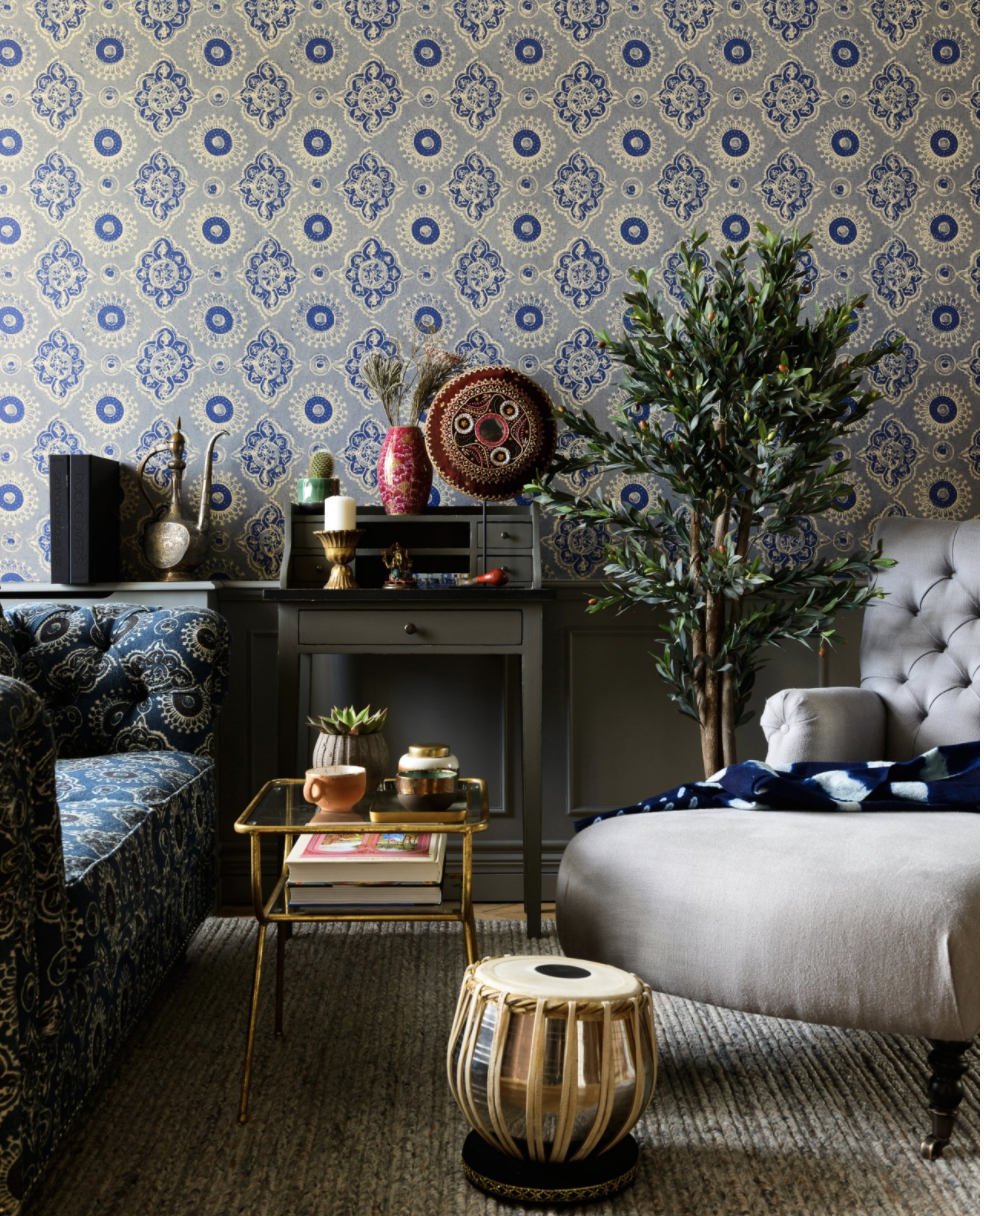 12 Living Room Wallpaper Ideas To Add Style Instantly Real Homes